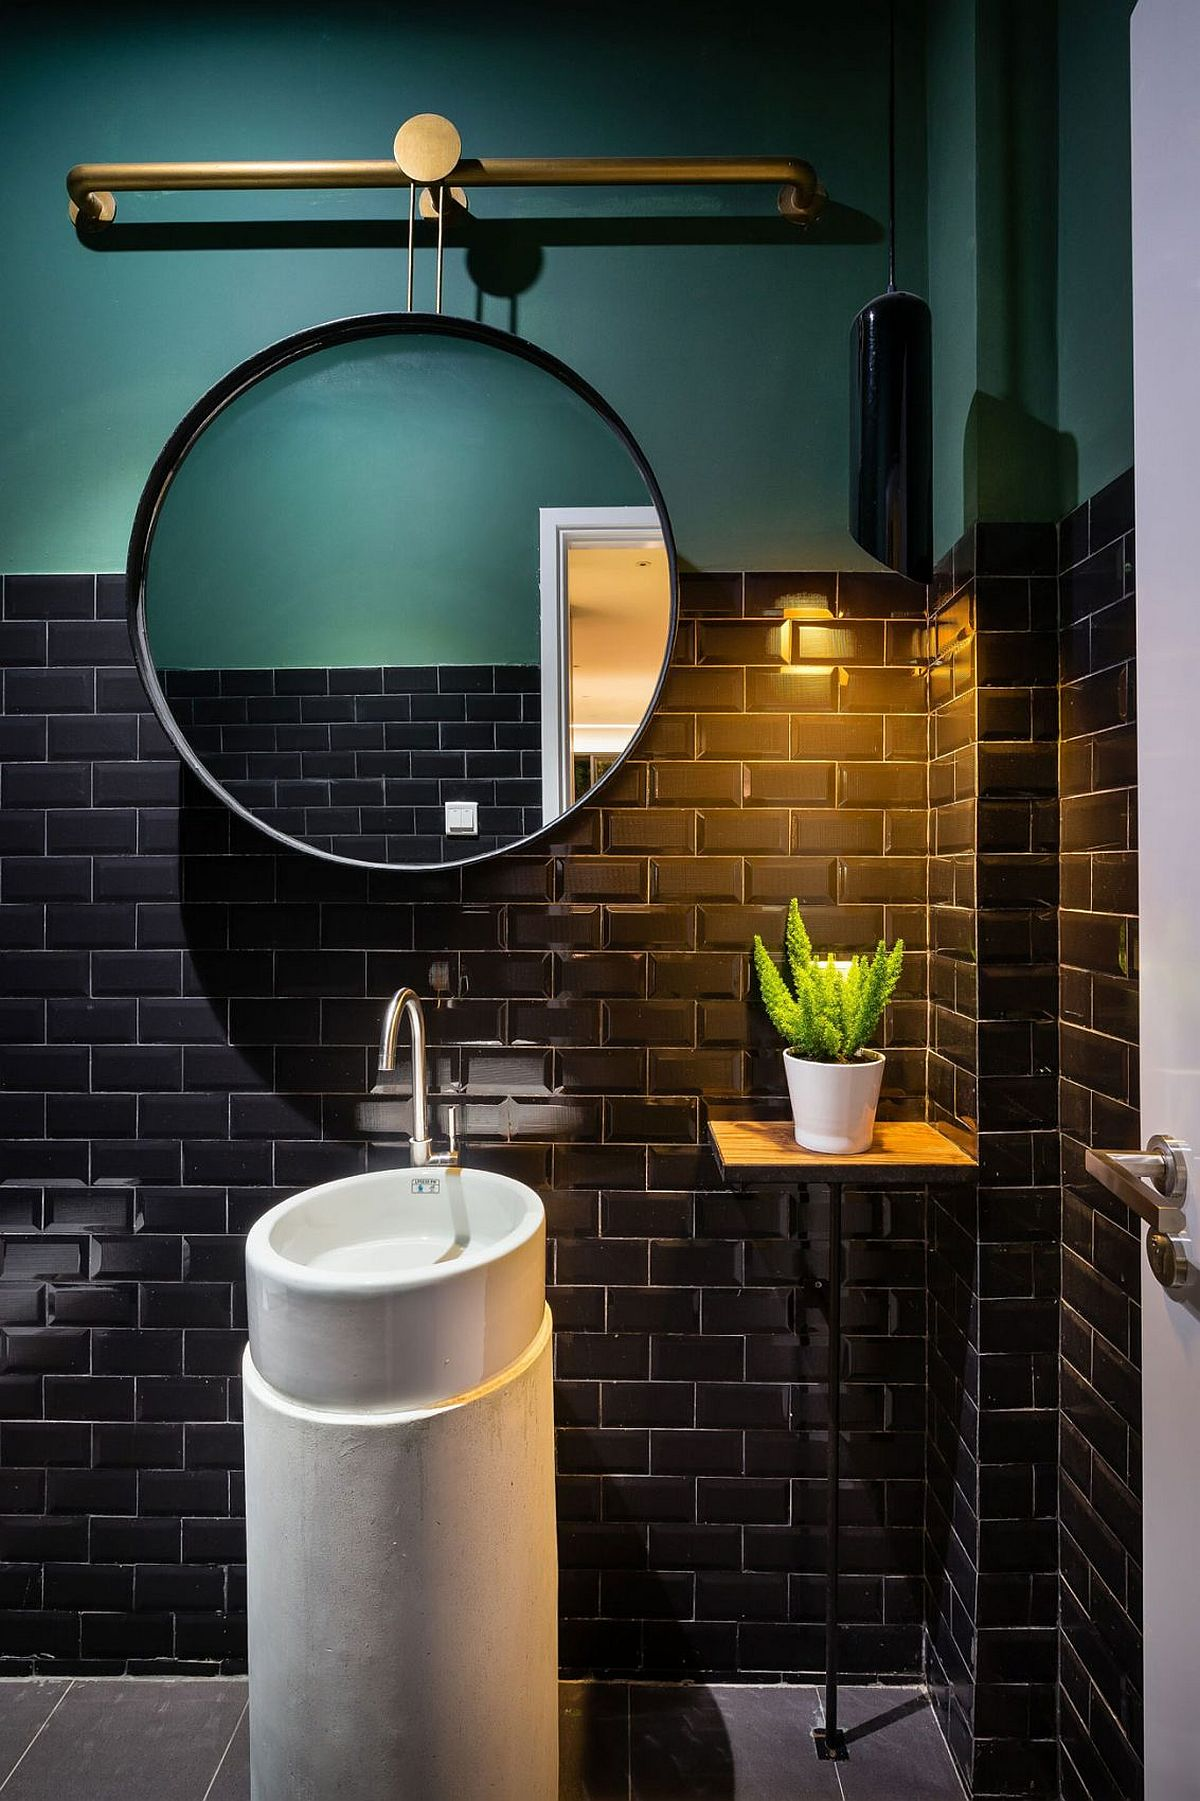 Gorgeous use of color and brass acceents in the small bathroom